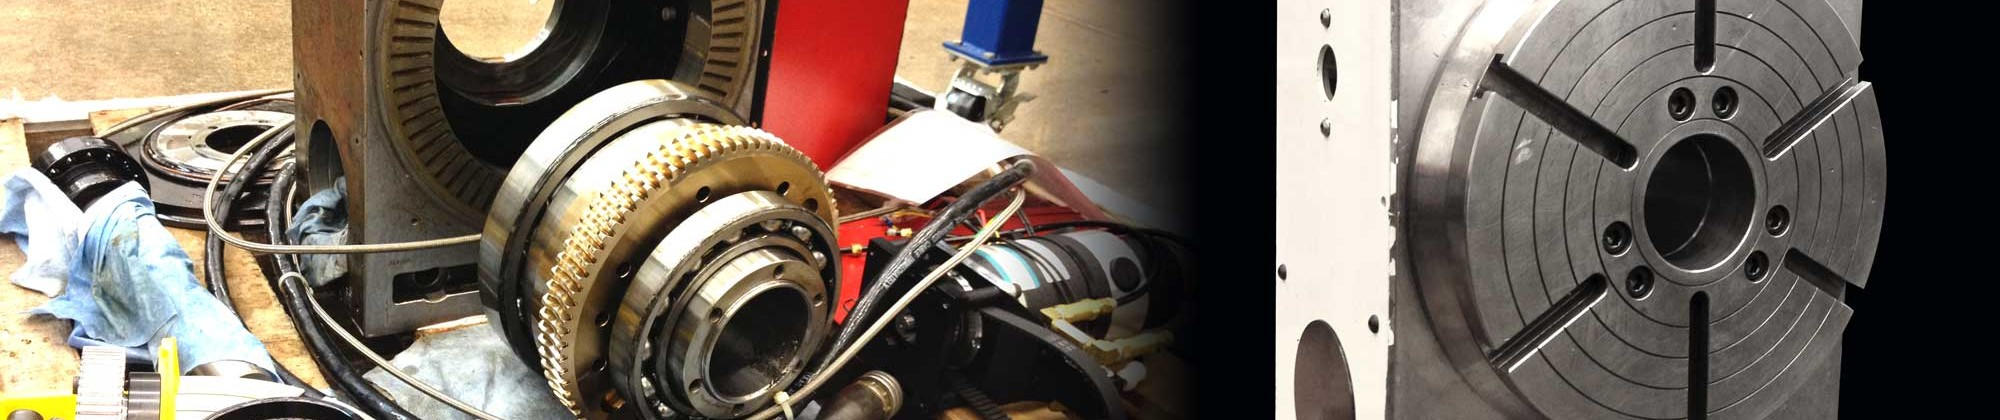 Rotary Table Repair Services